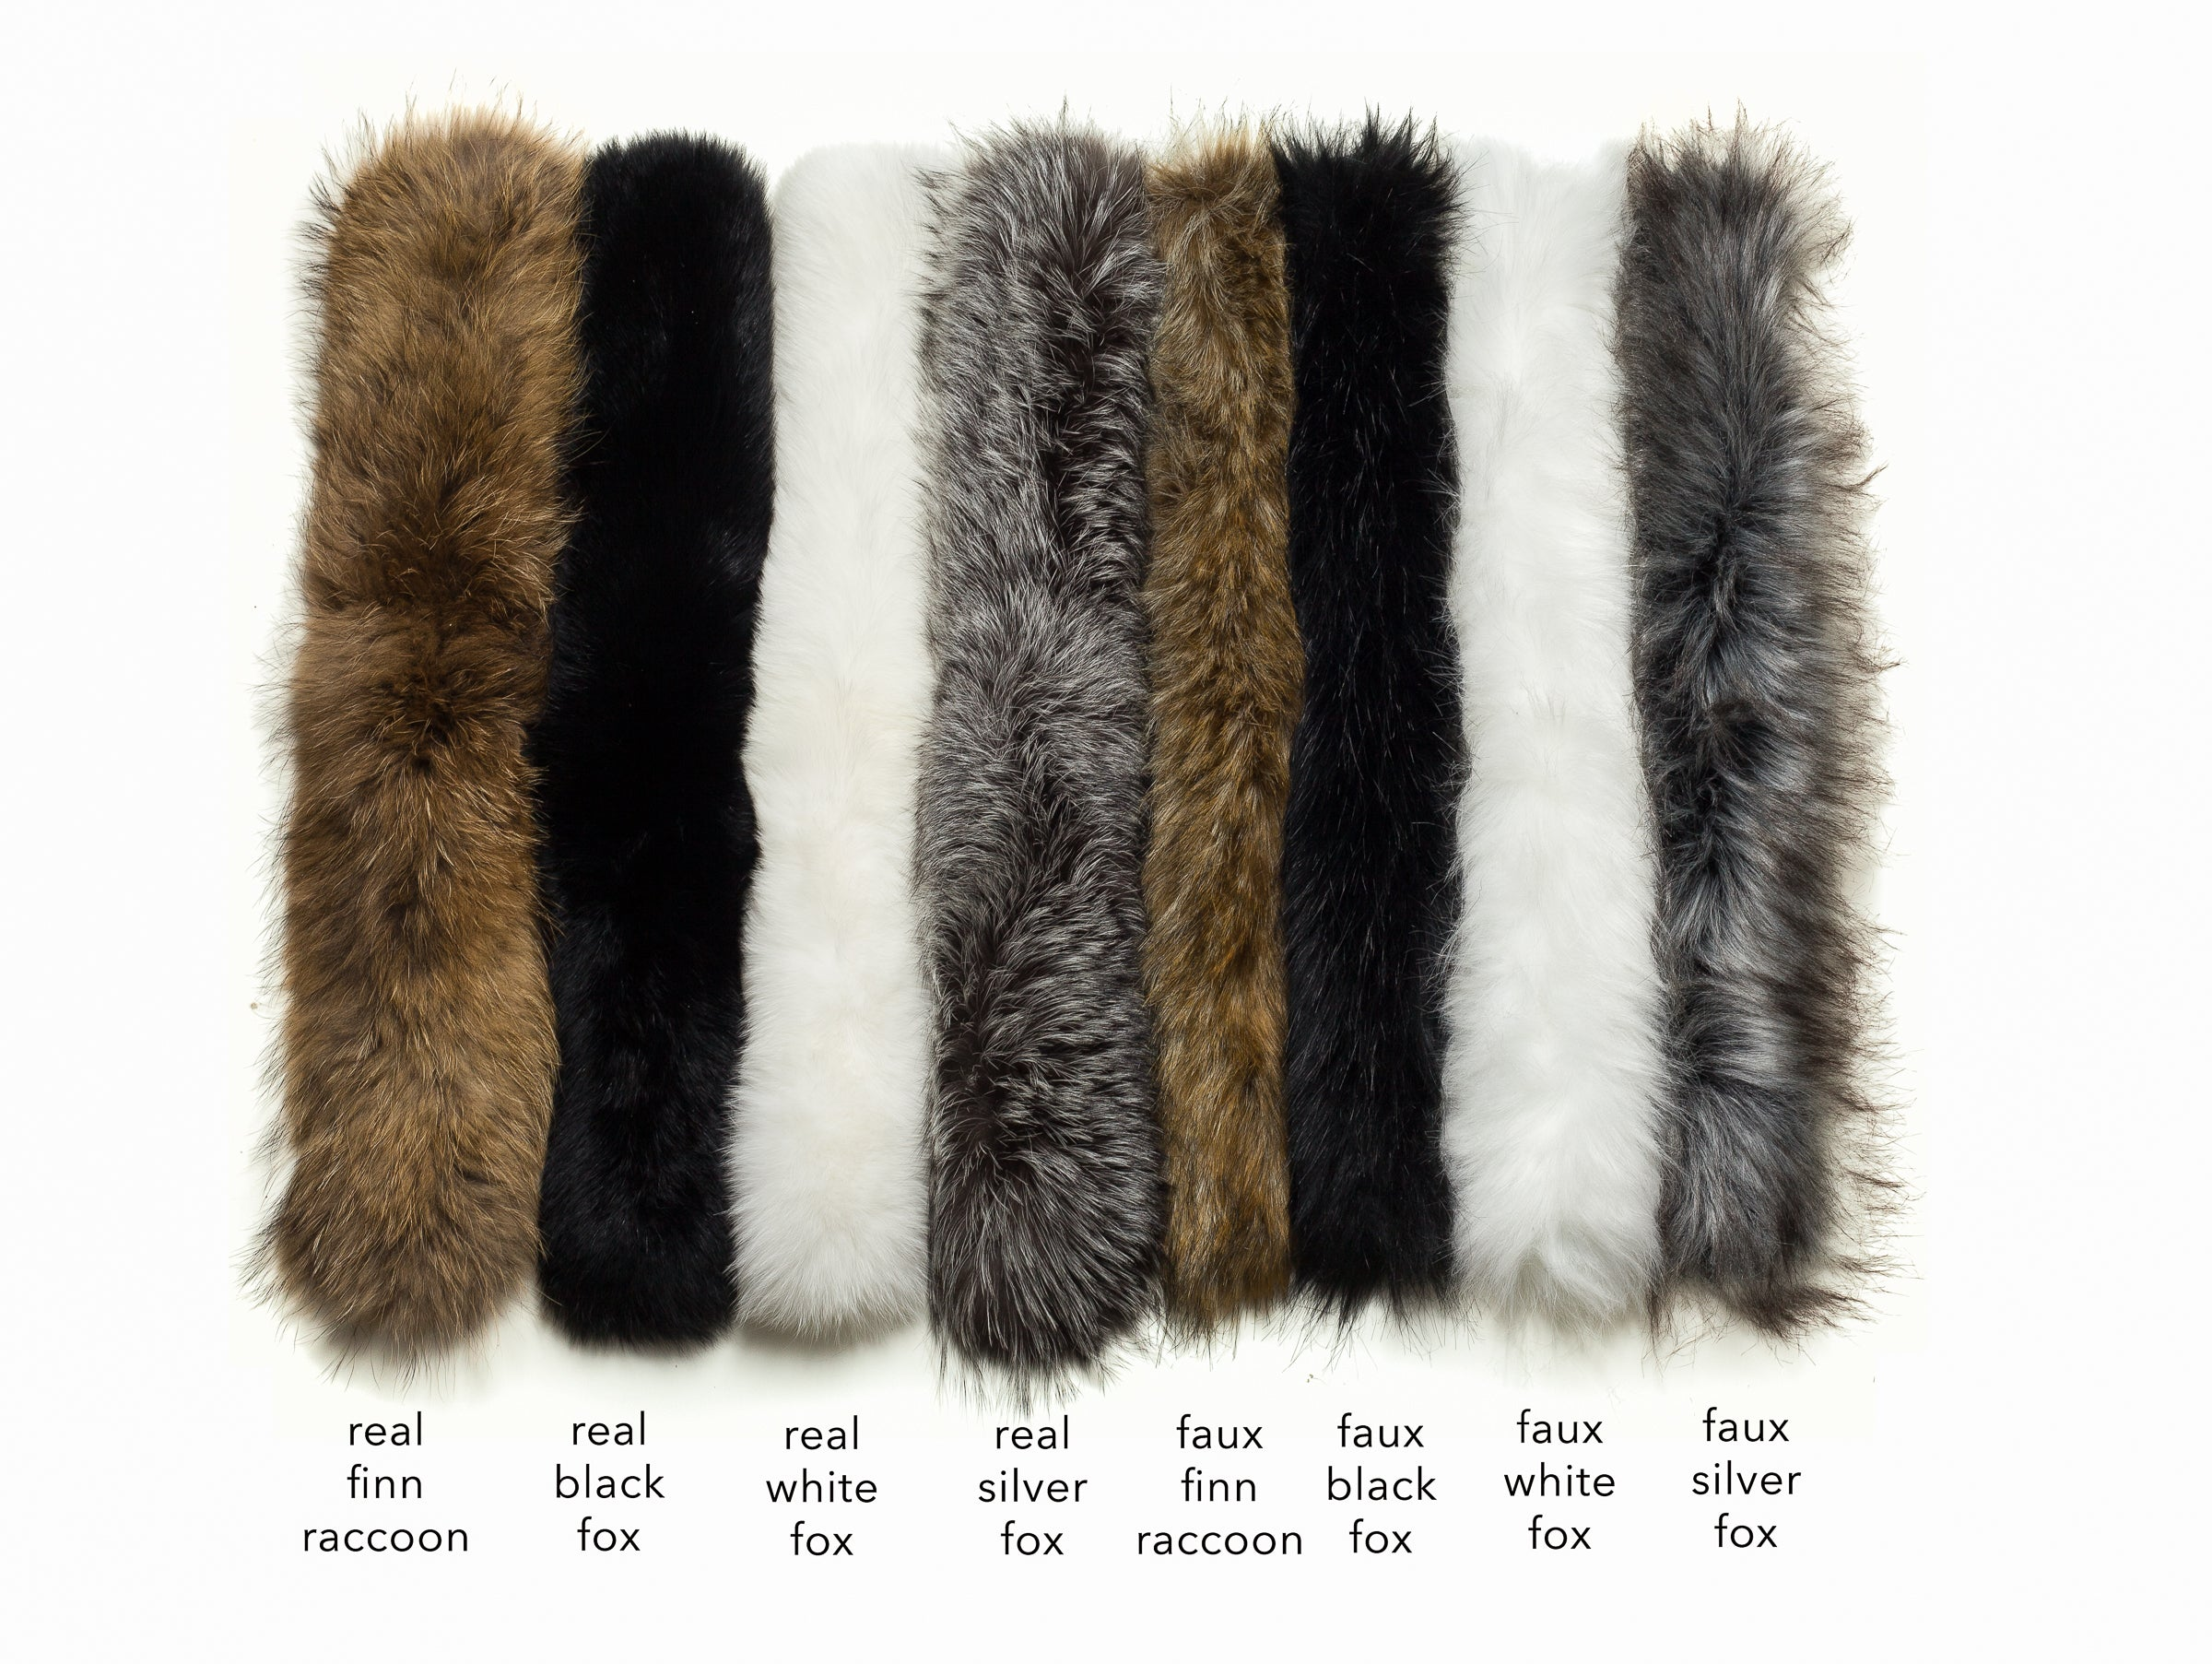 ski jackets, ski pants, luxury skiwear, ski apparel, ski fashion, fur ski apparel, fur trim, Michele Long Coat, Skea Limited, Skea Limited - Skea Limited